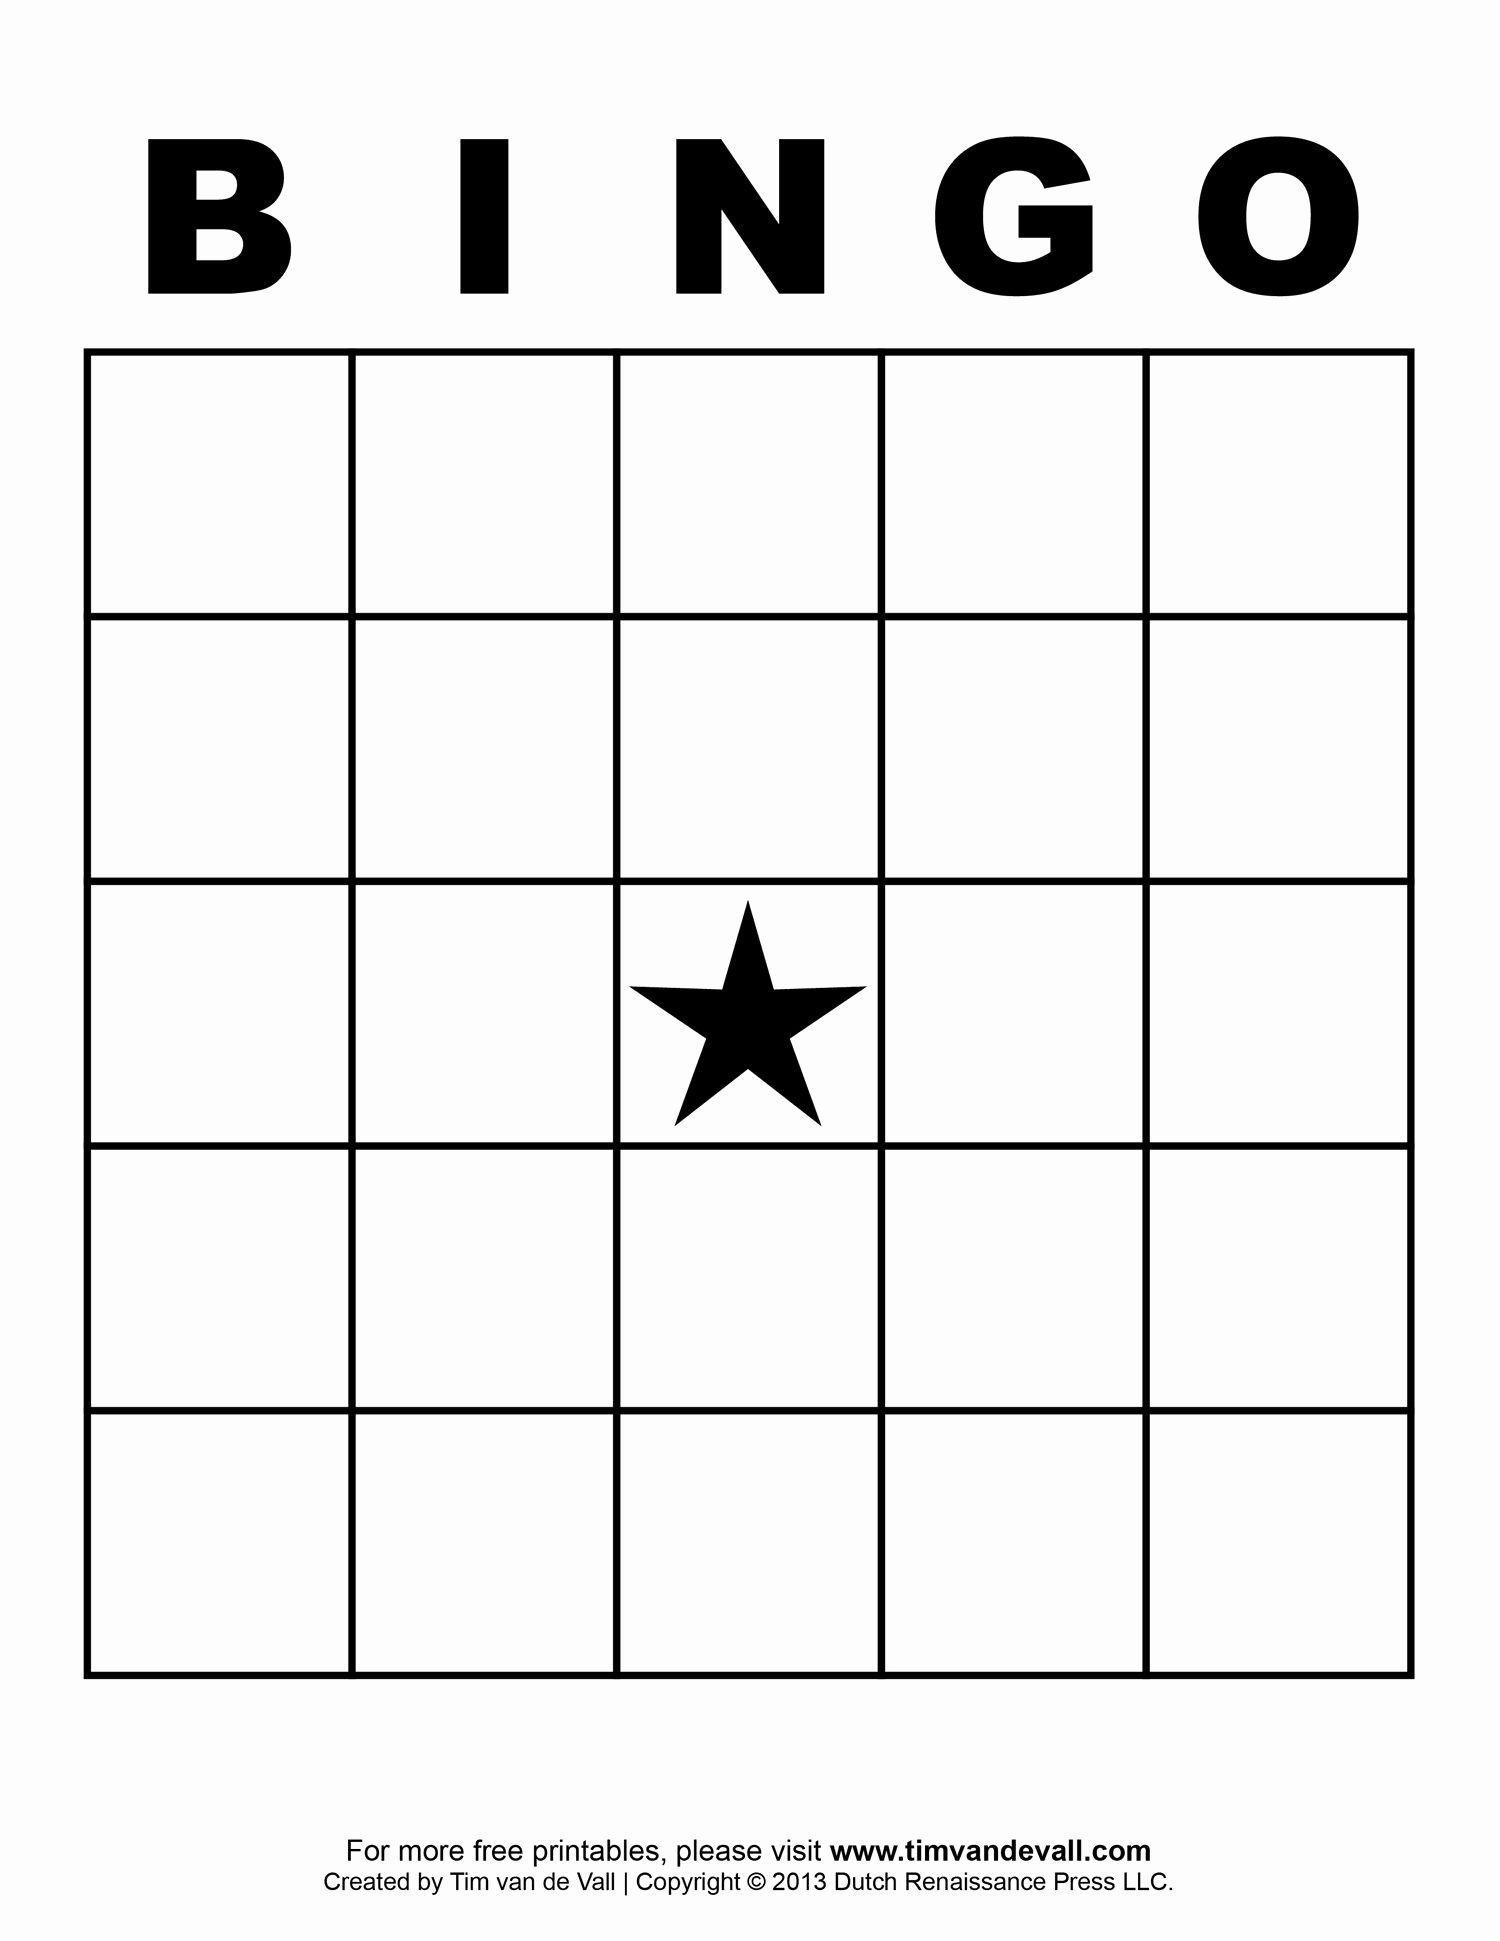 Free Blank Bingo Template Beautiful Free Printable Blank Bingo Cards Template 4 X 4